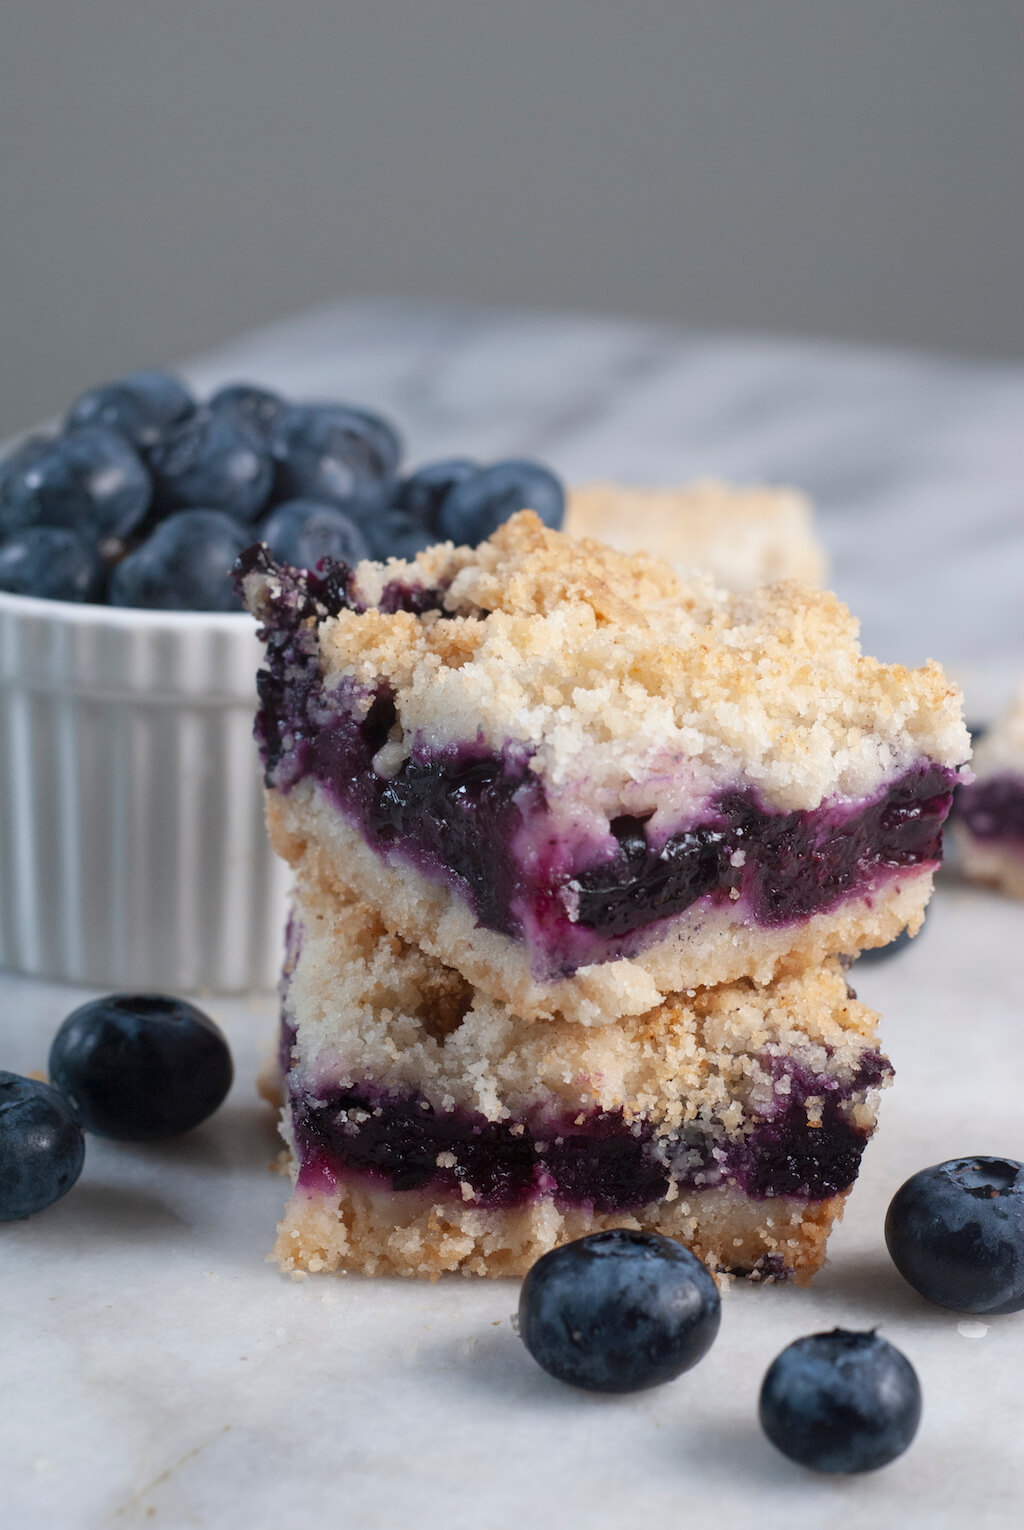 Two vegan blueberry squares stacked on a marble slab. There are blueberries in the background.